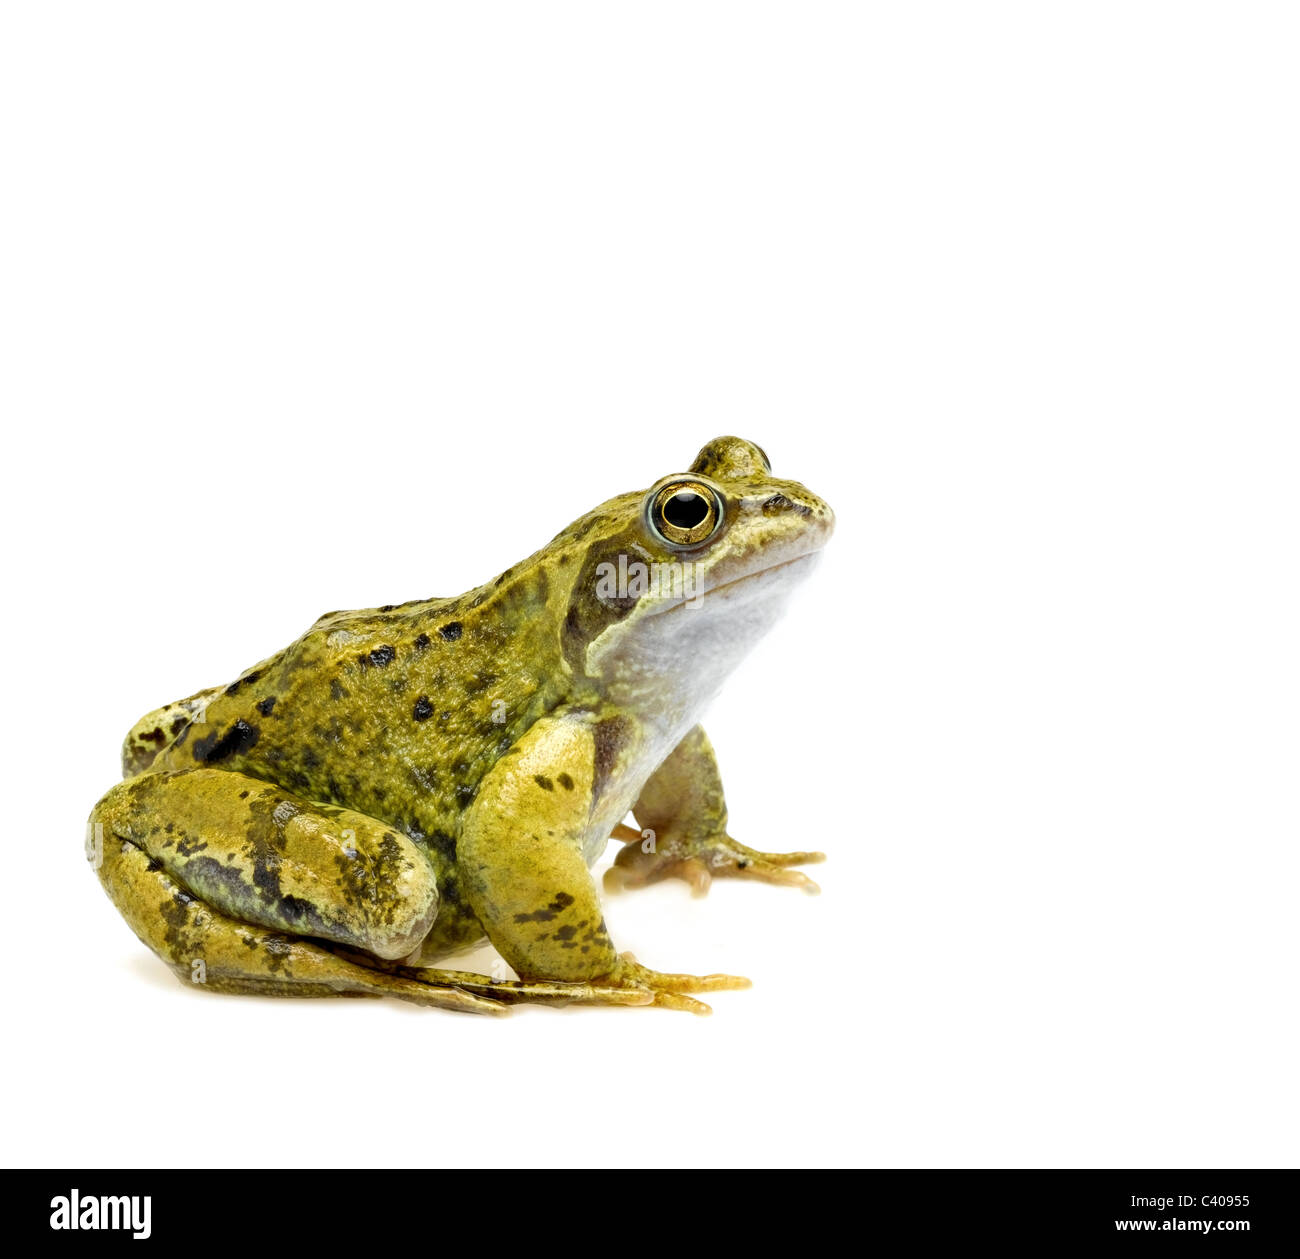 Frog Cut Out Stock Photo Royalty Free Image